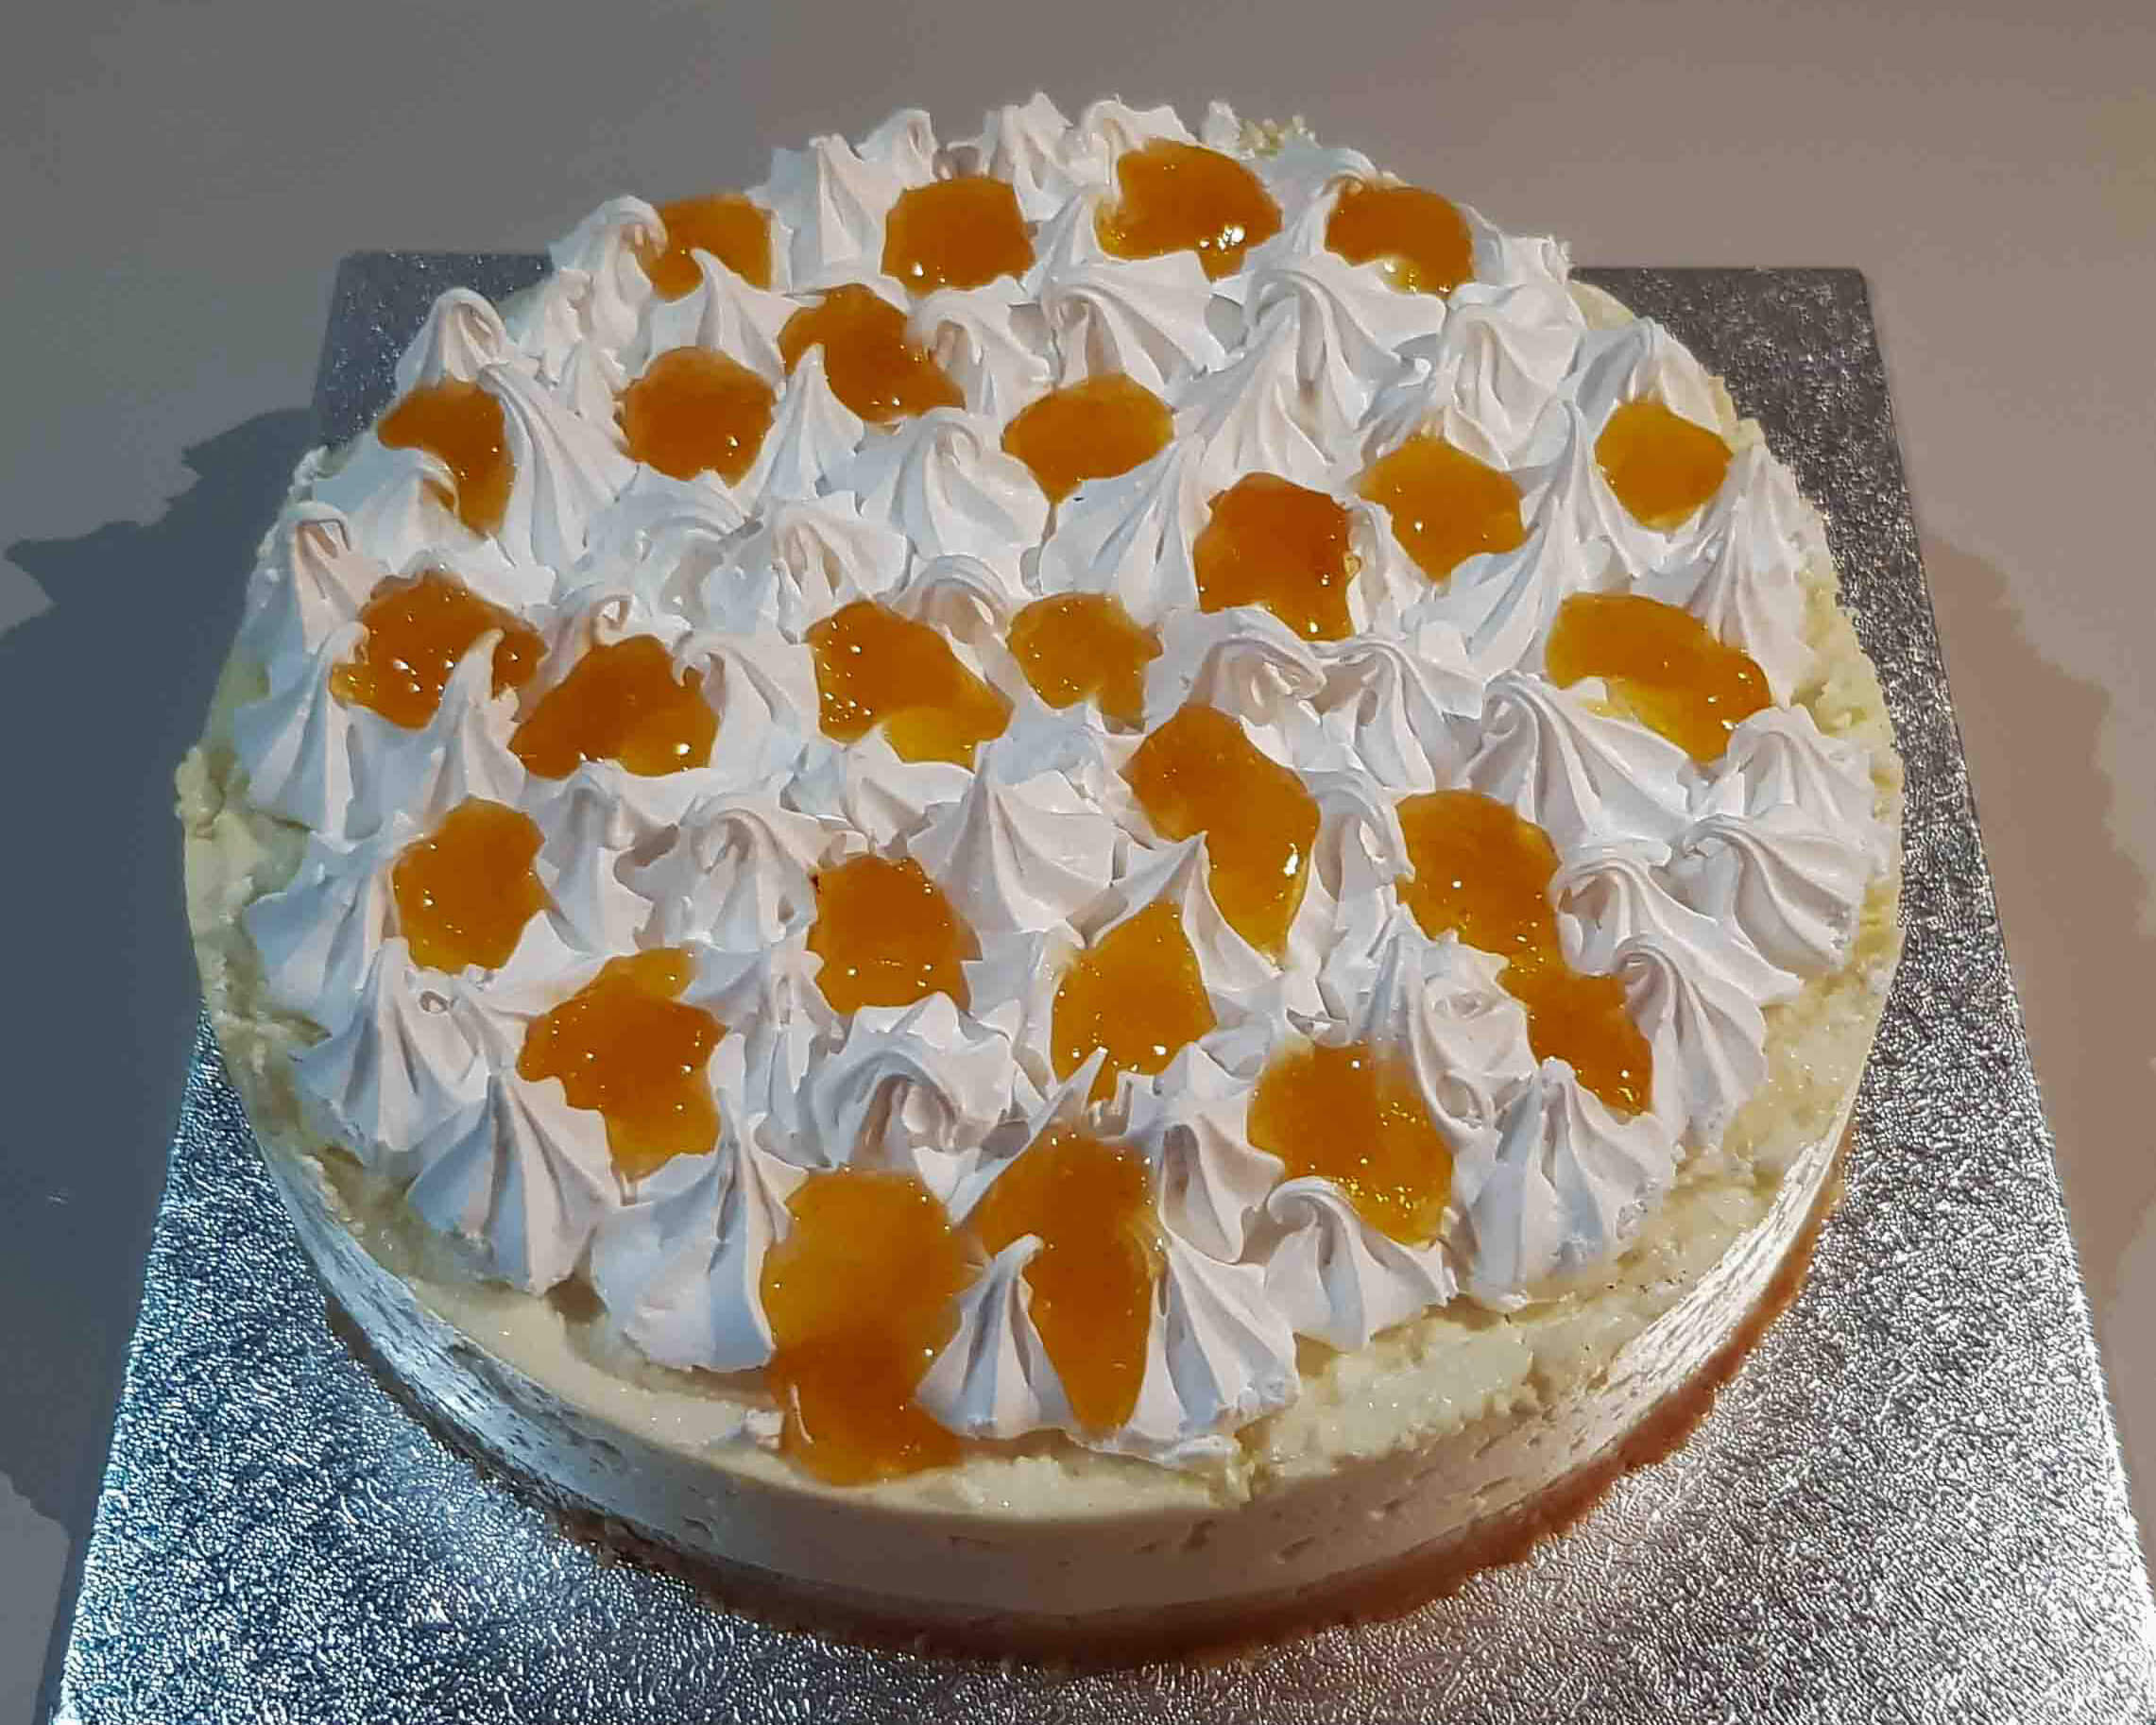 Baked meringue cheesecake with apricot jam